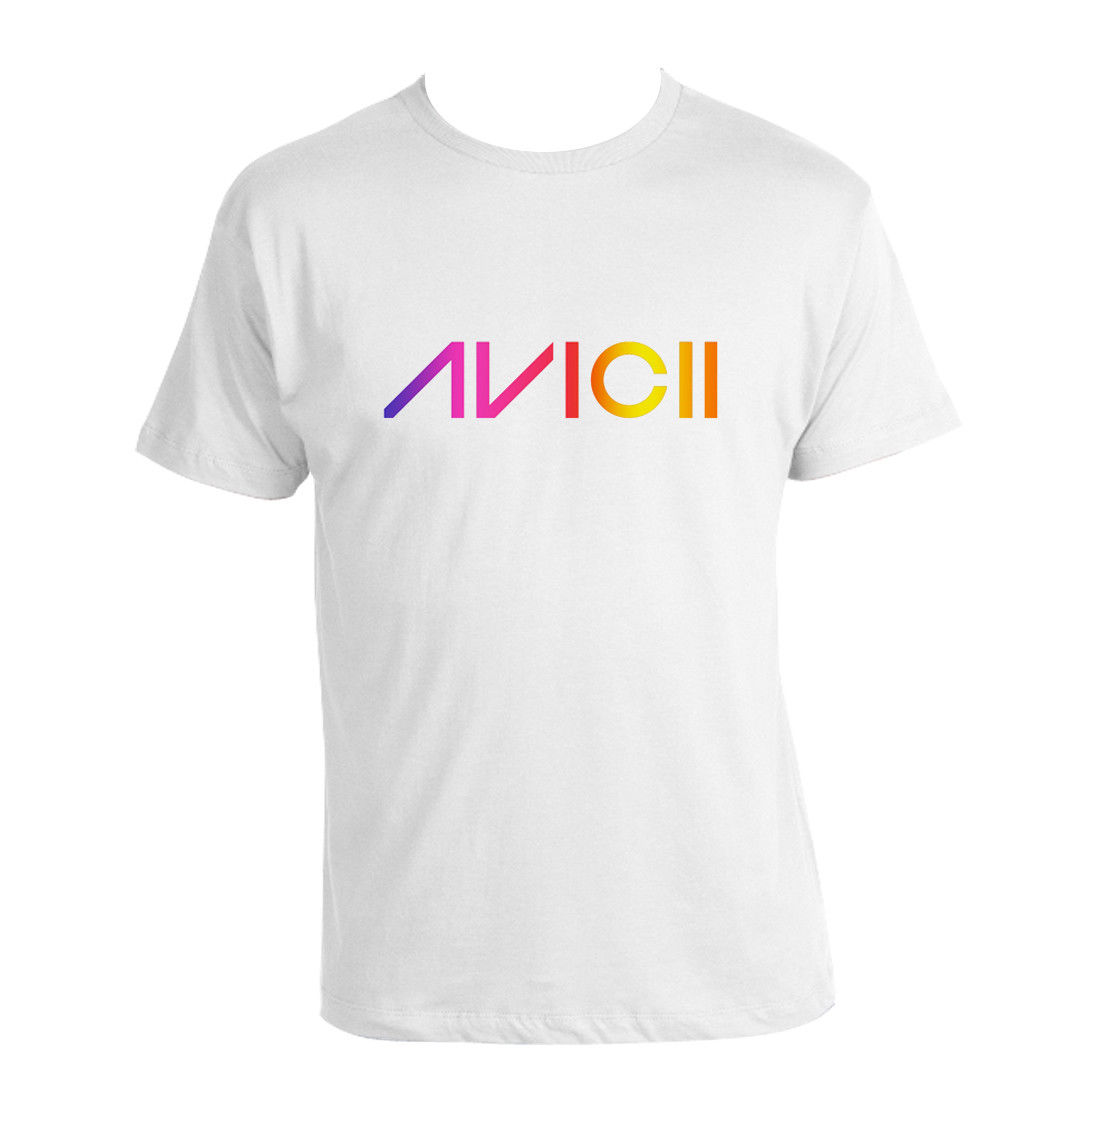 Avicii T-Shirt unisex printed Tee avicii white EDM Legend Dance Music white Fashion Men T Shirts Free Shipping image